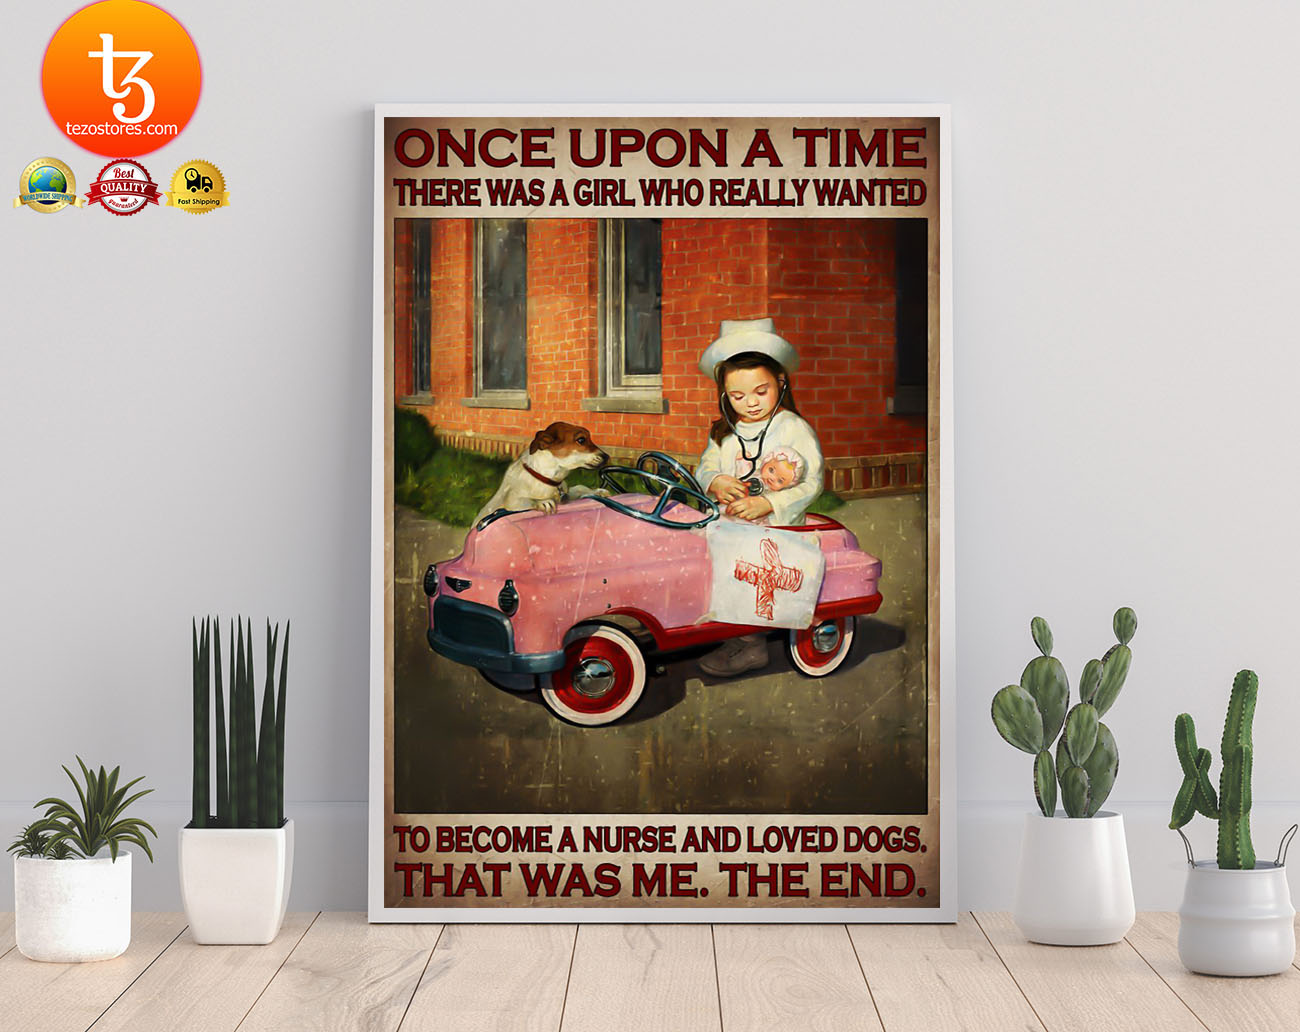 Once upon a time there was a girl who really wanted to become a nurse and loved dogs poster 21